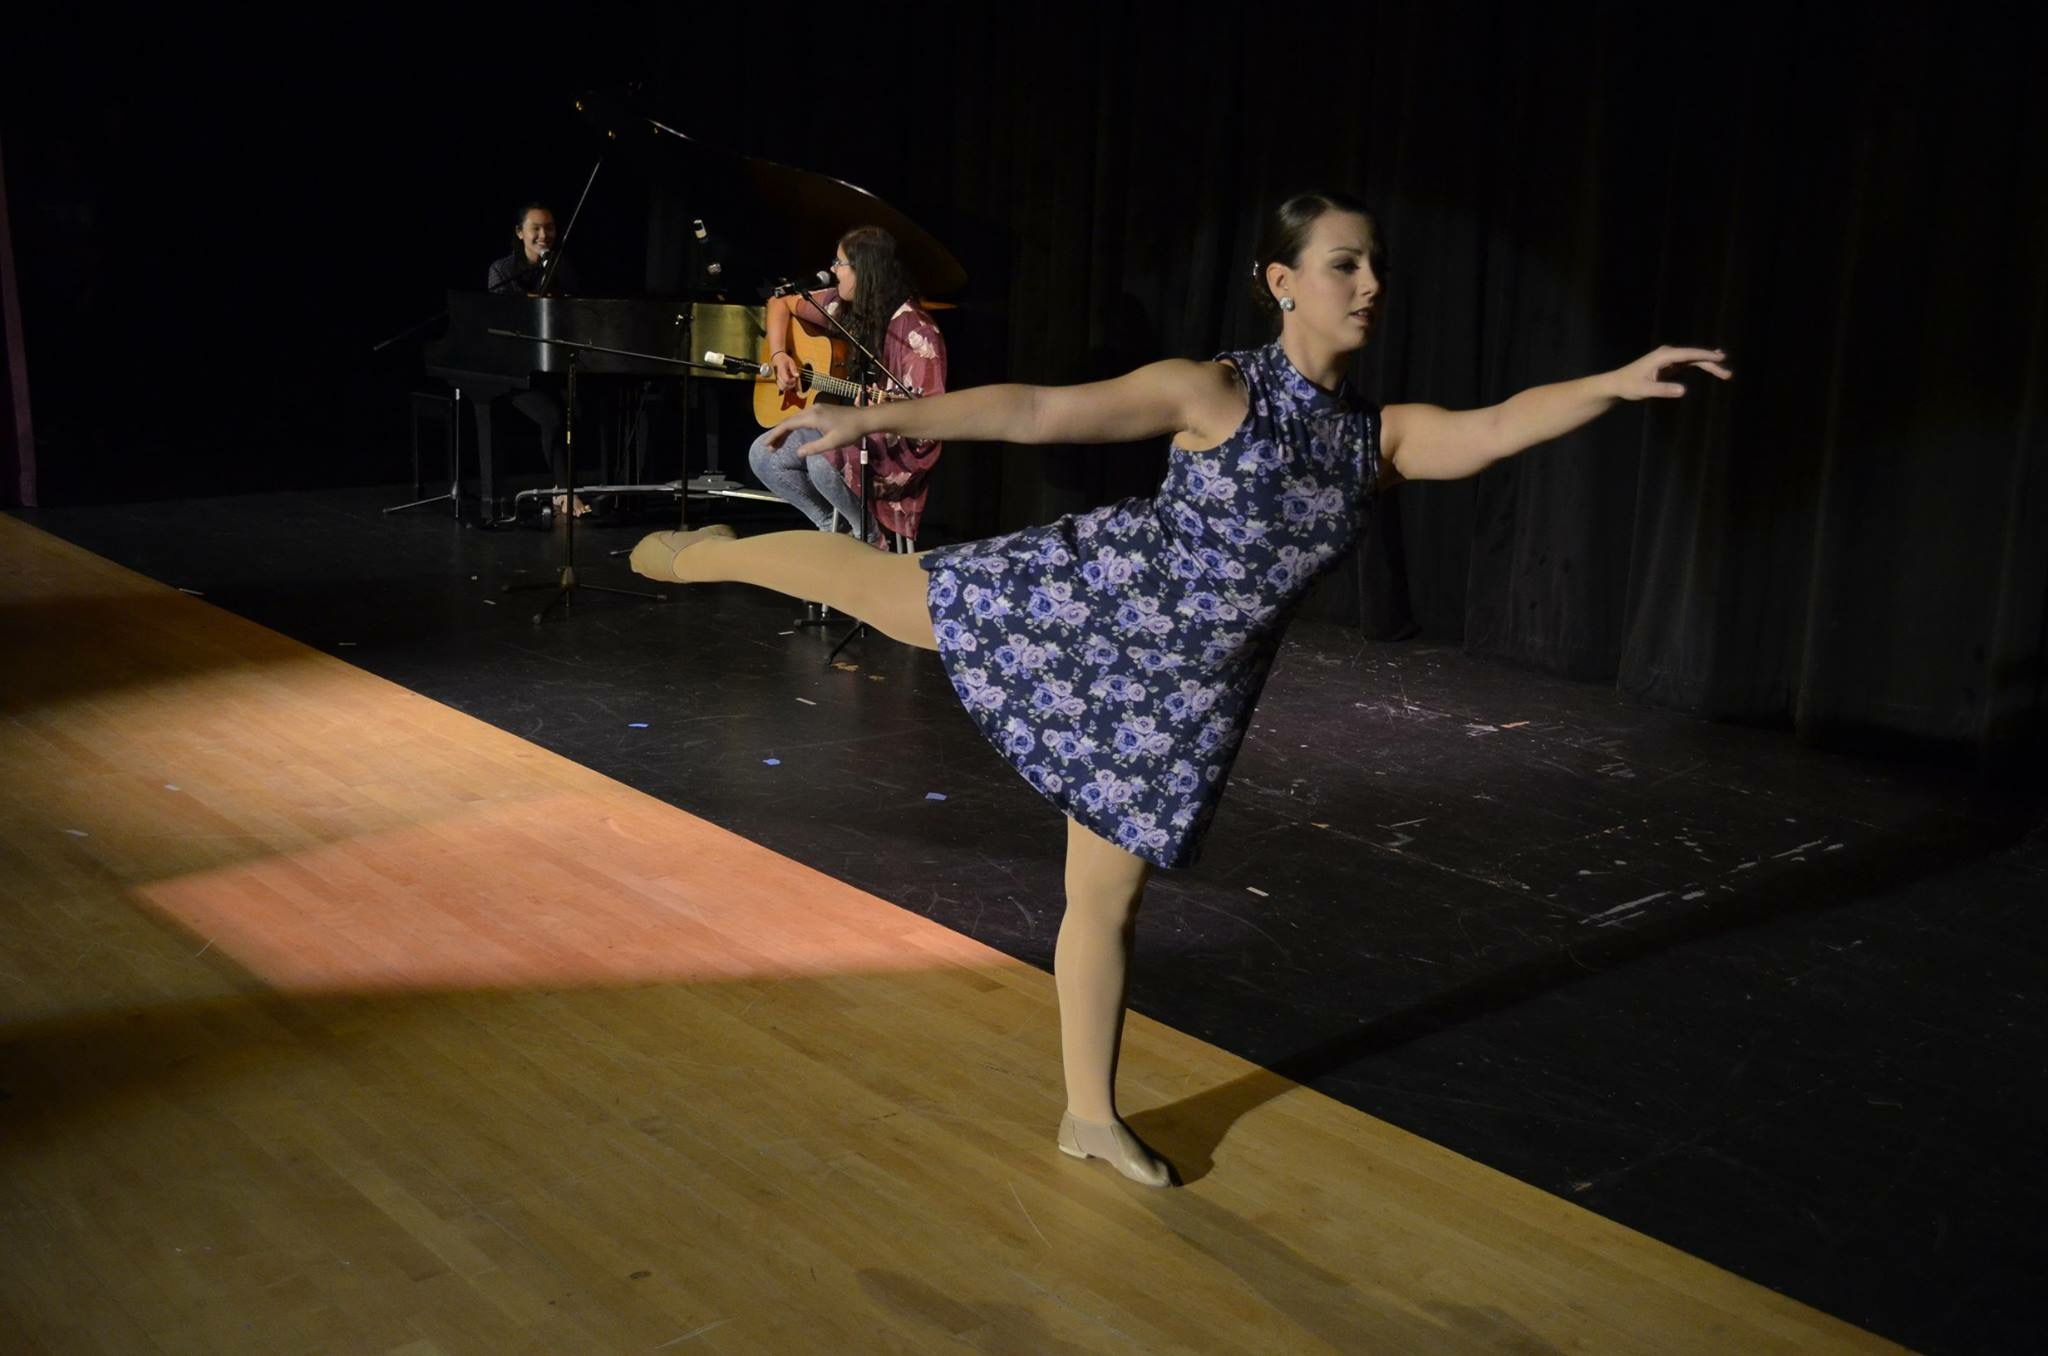 From the left, Seniors Madeline Lam, Sarah Vieira, and Ashley Vieira are pictured performing a singing and dancing trio. Photo by Danielle Copson.